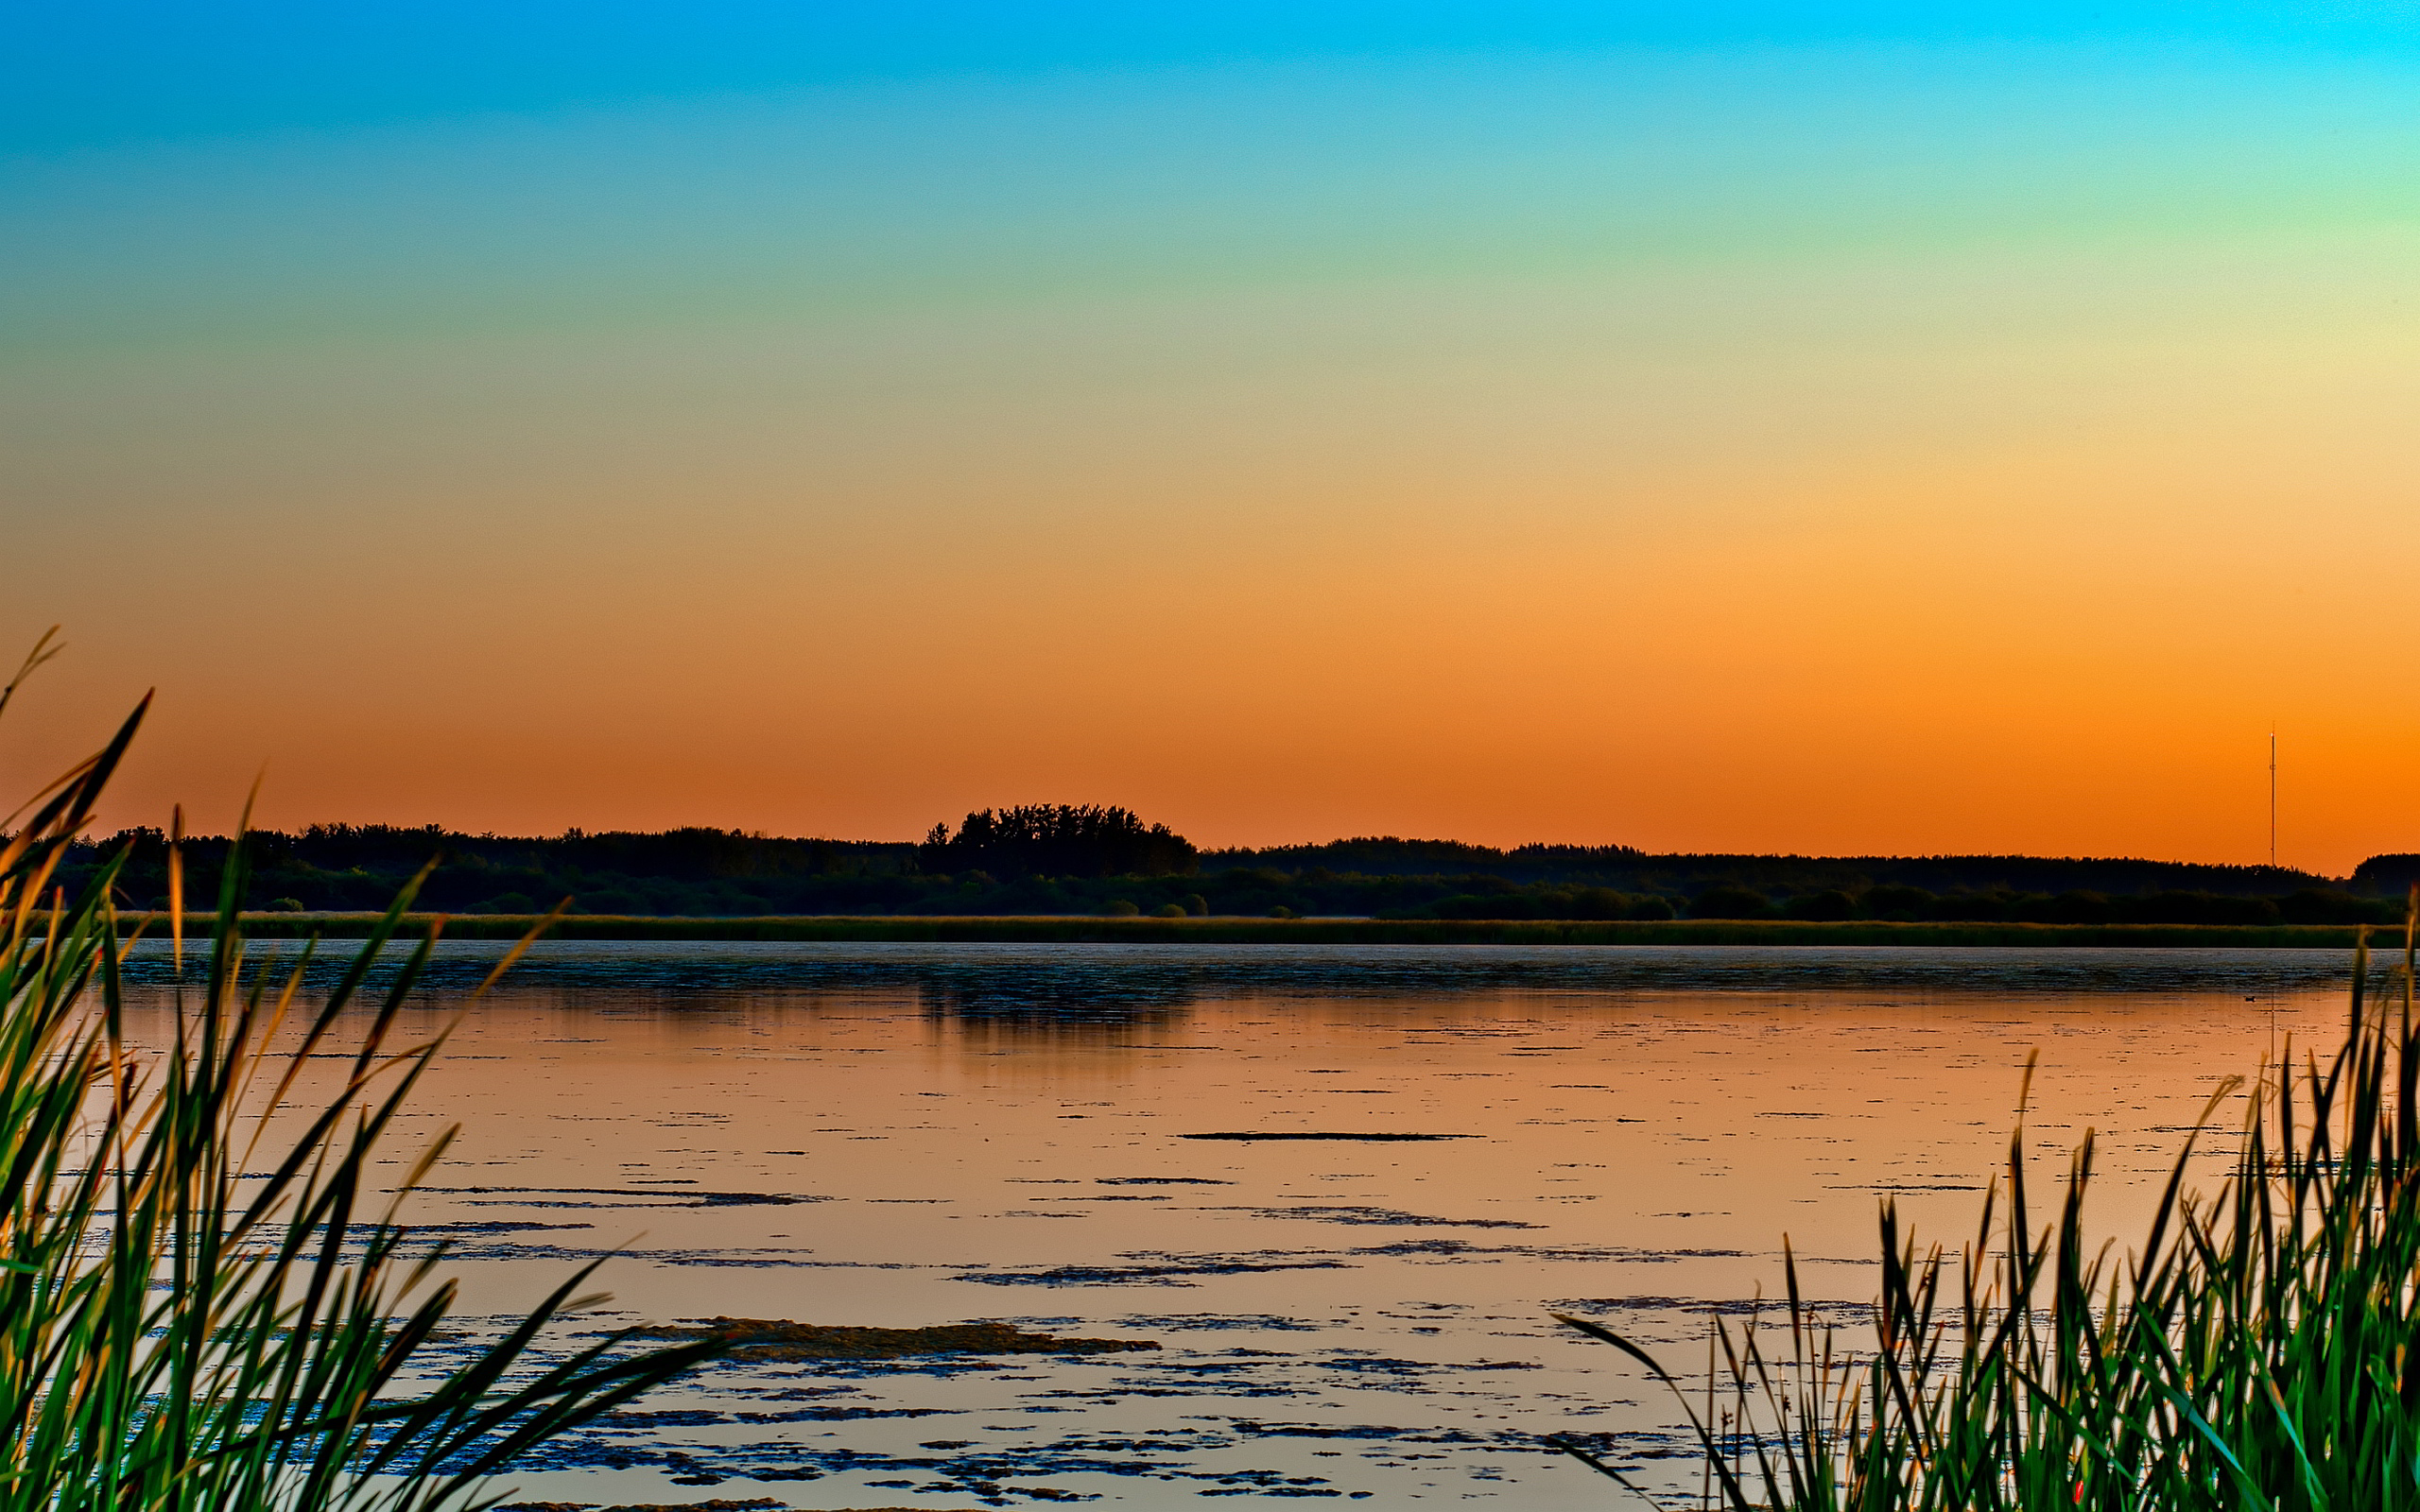 sunset lake pictures download